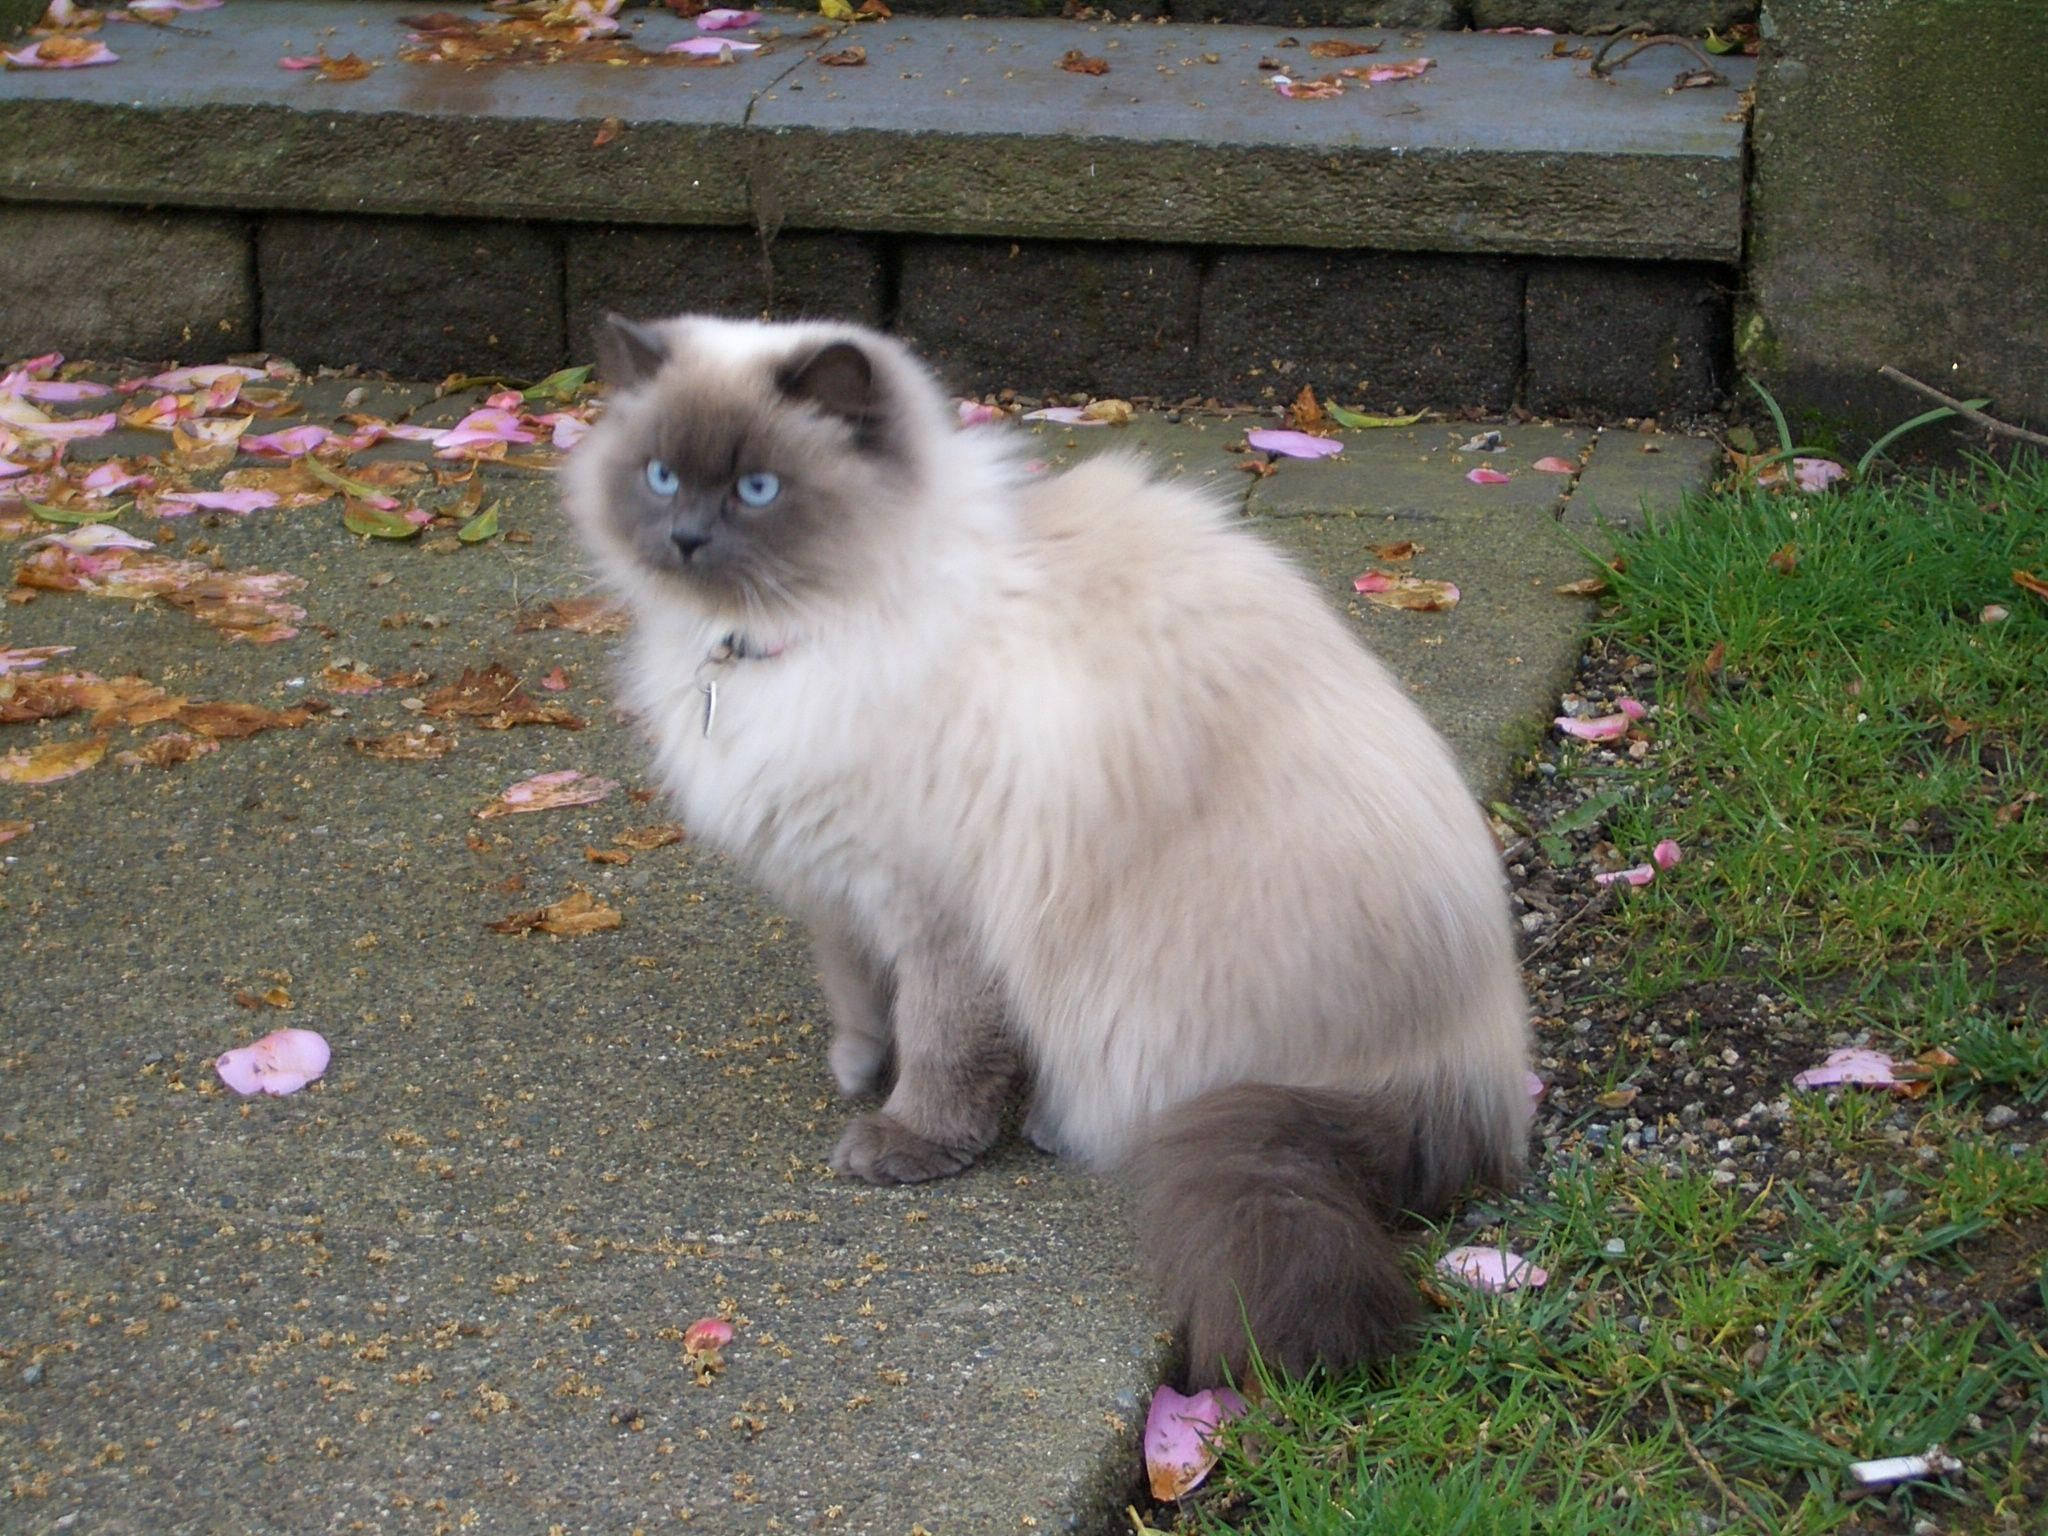 Persian And Himalayan Siamese Mix Cat I Love Kittens More Pics Like This On The Website Click The Link Catsfl Himalayan Cat Siamese Cats For Sale Cat Breeds